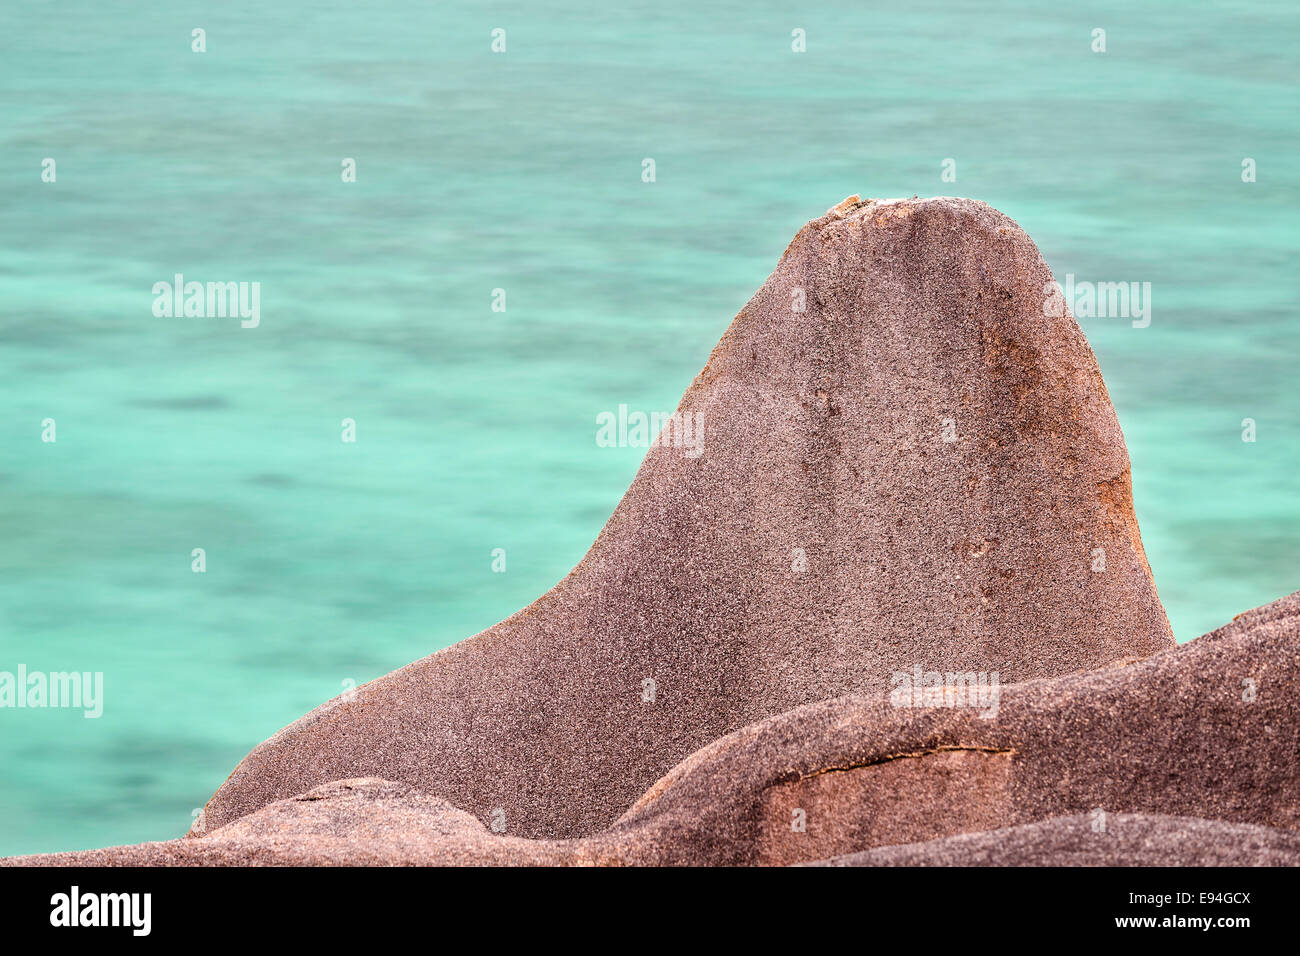 Long exposure view of a granite rock at the famous Anse Source D'Argent in La Digue, Seychelles Stock Photo